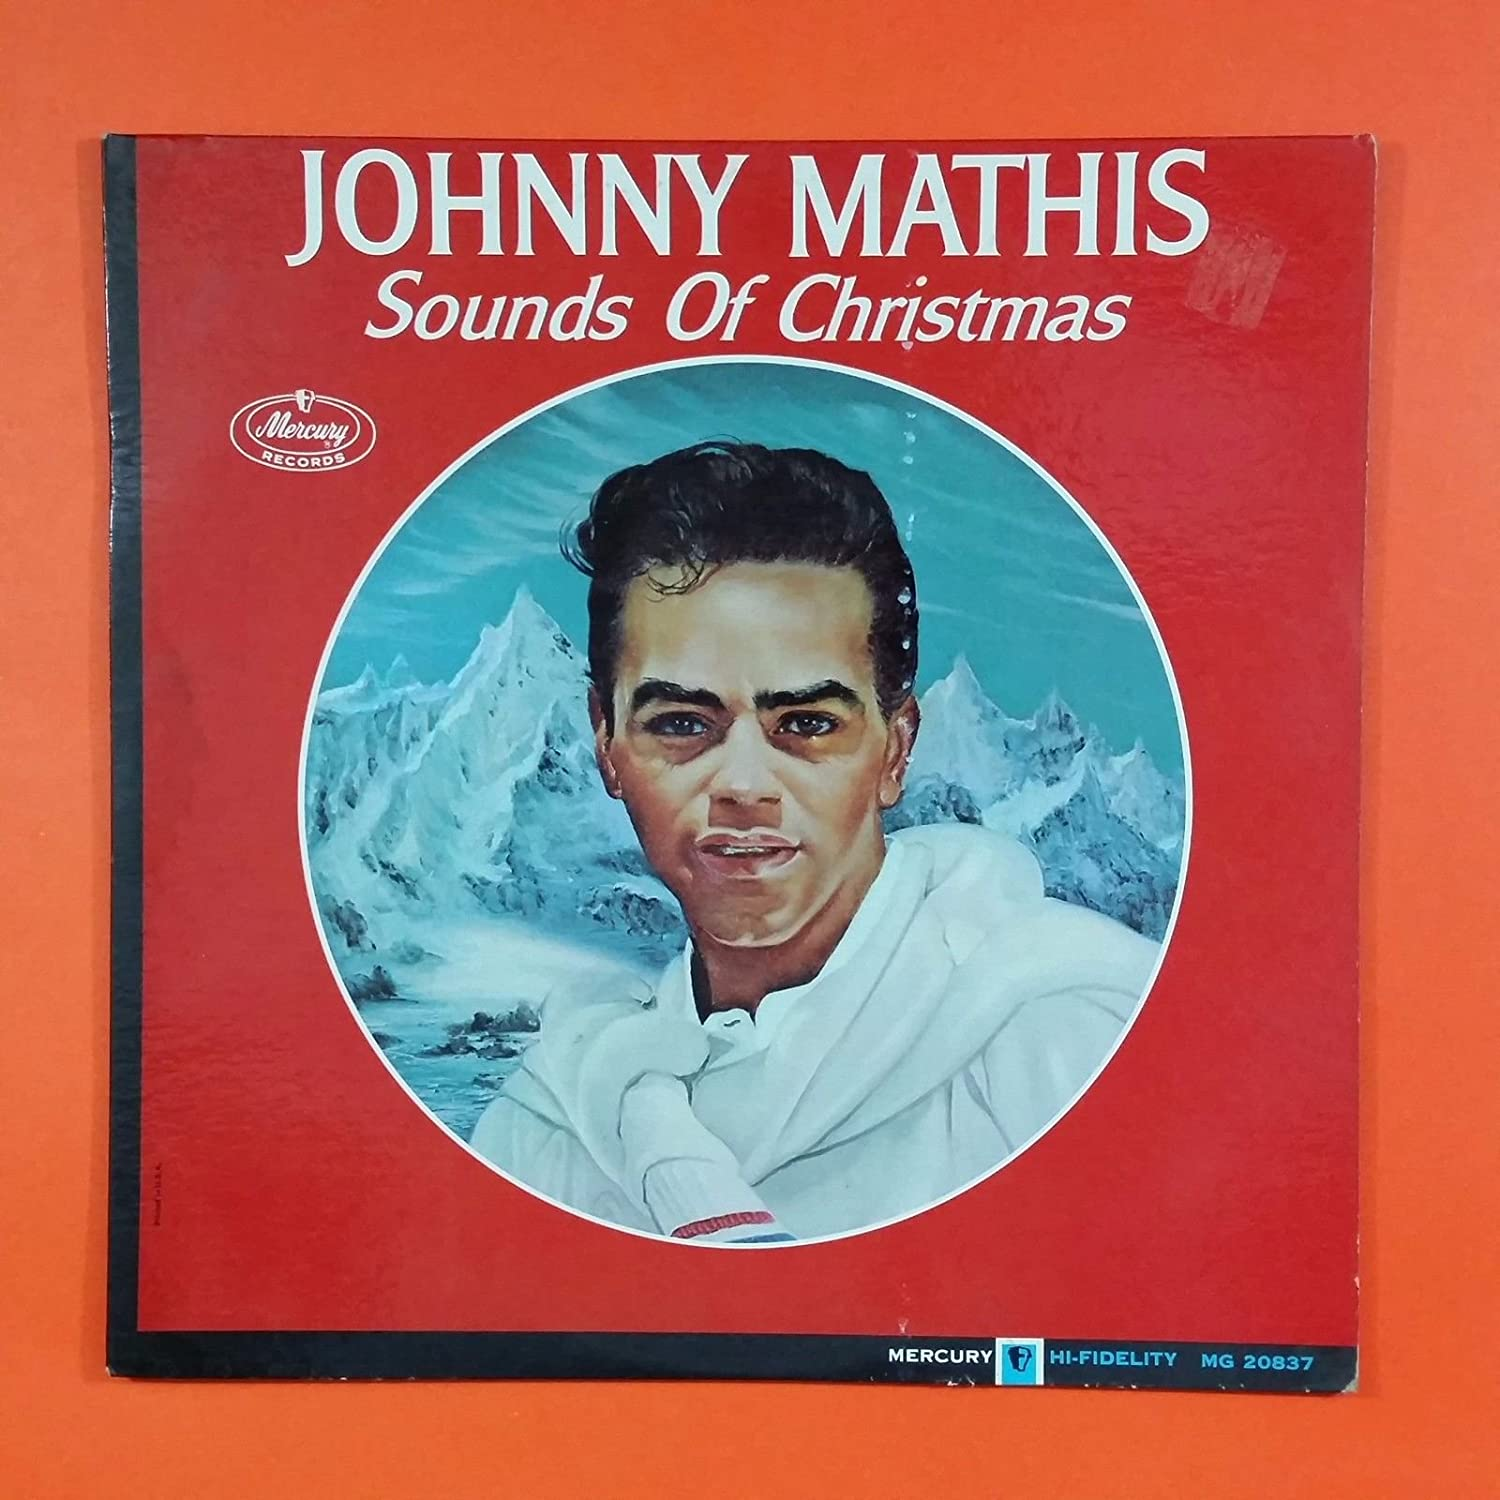 JOHNNY MATHIS Sound Of Christmas MG 20837 LP Vinyl VG Cover VG+ ...